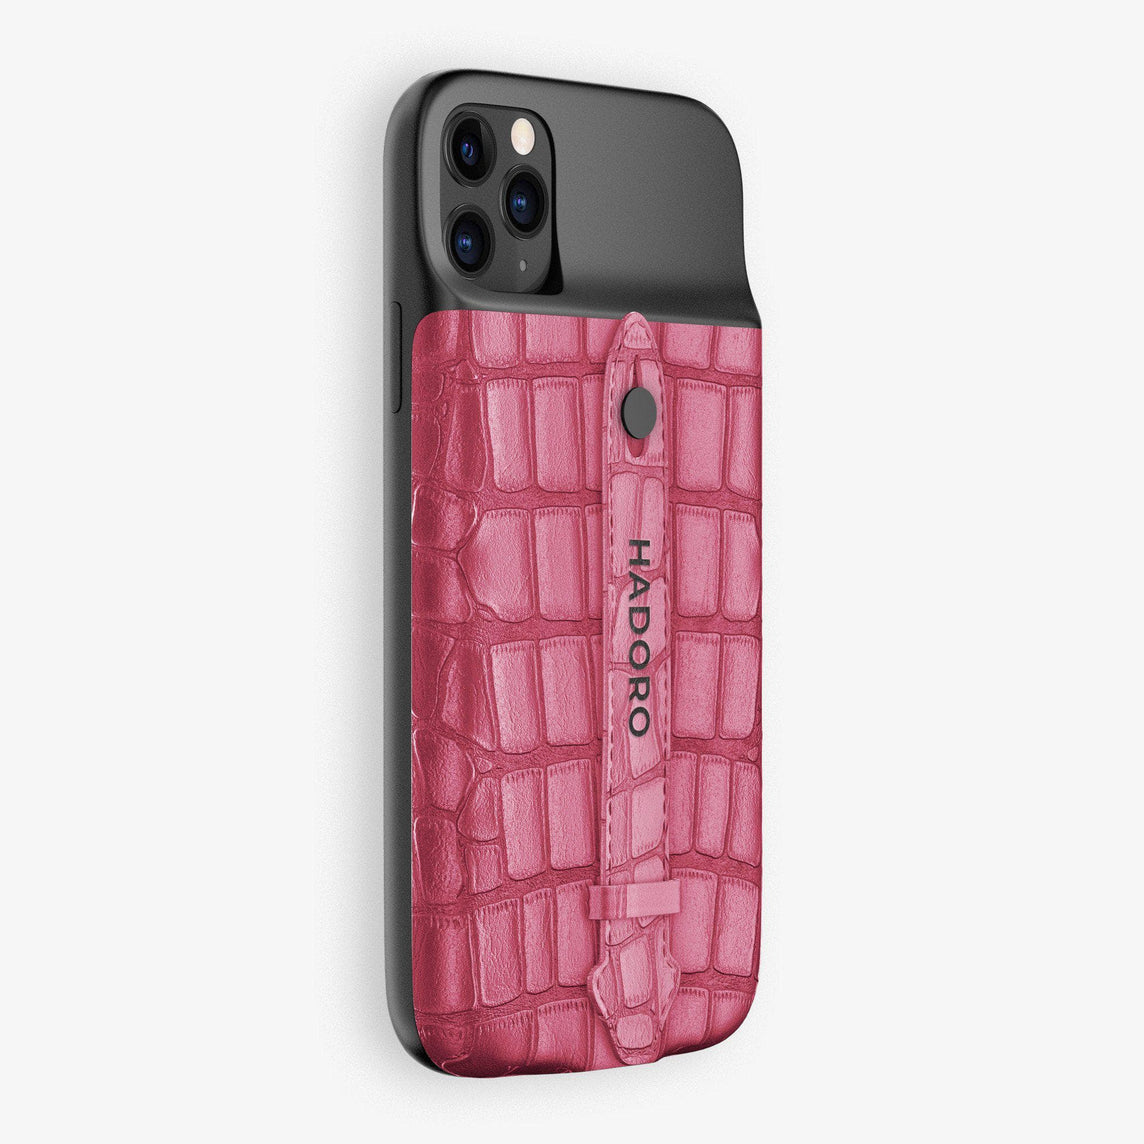 Alligator Battery Finger Case for iPhone 11 Pro Max | Pink Girly/Pink Girly - Black